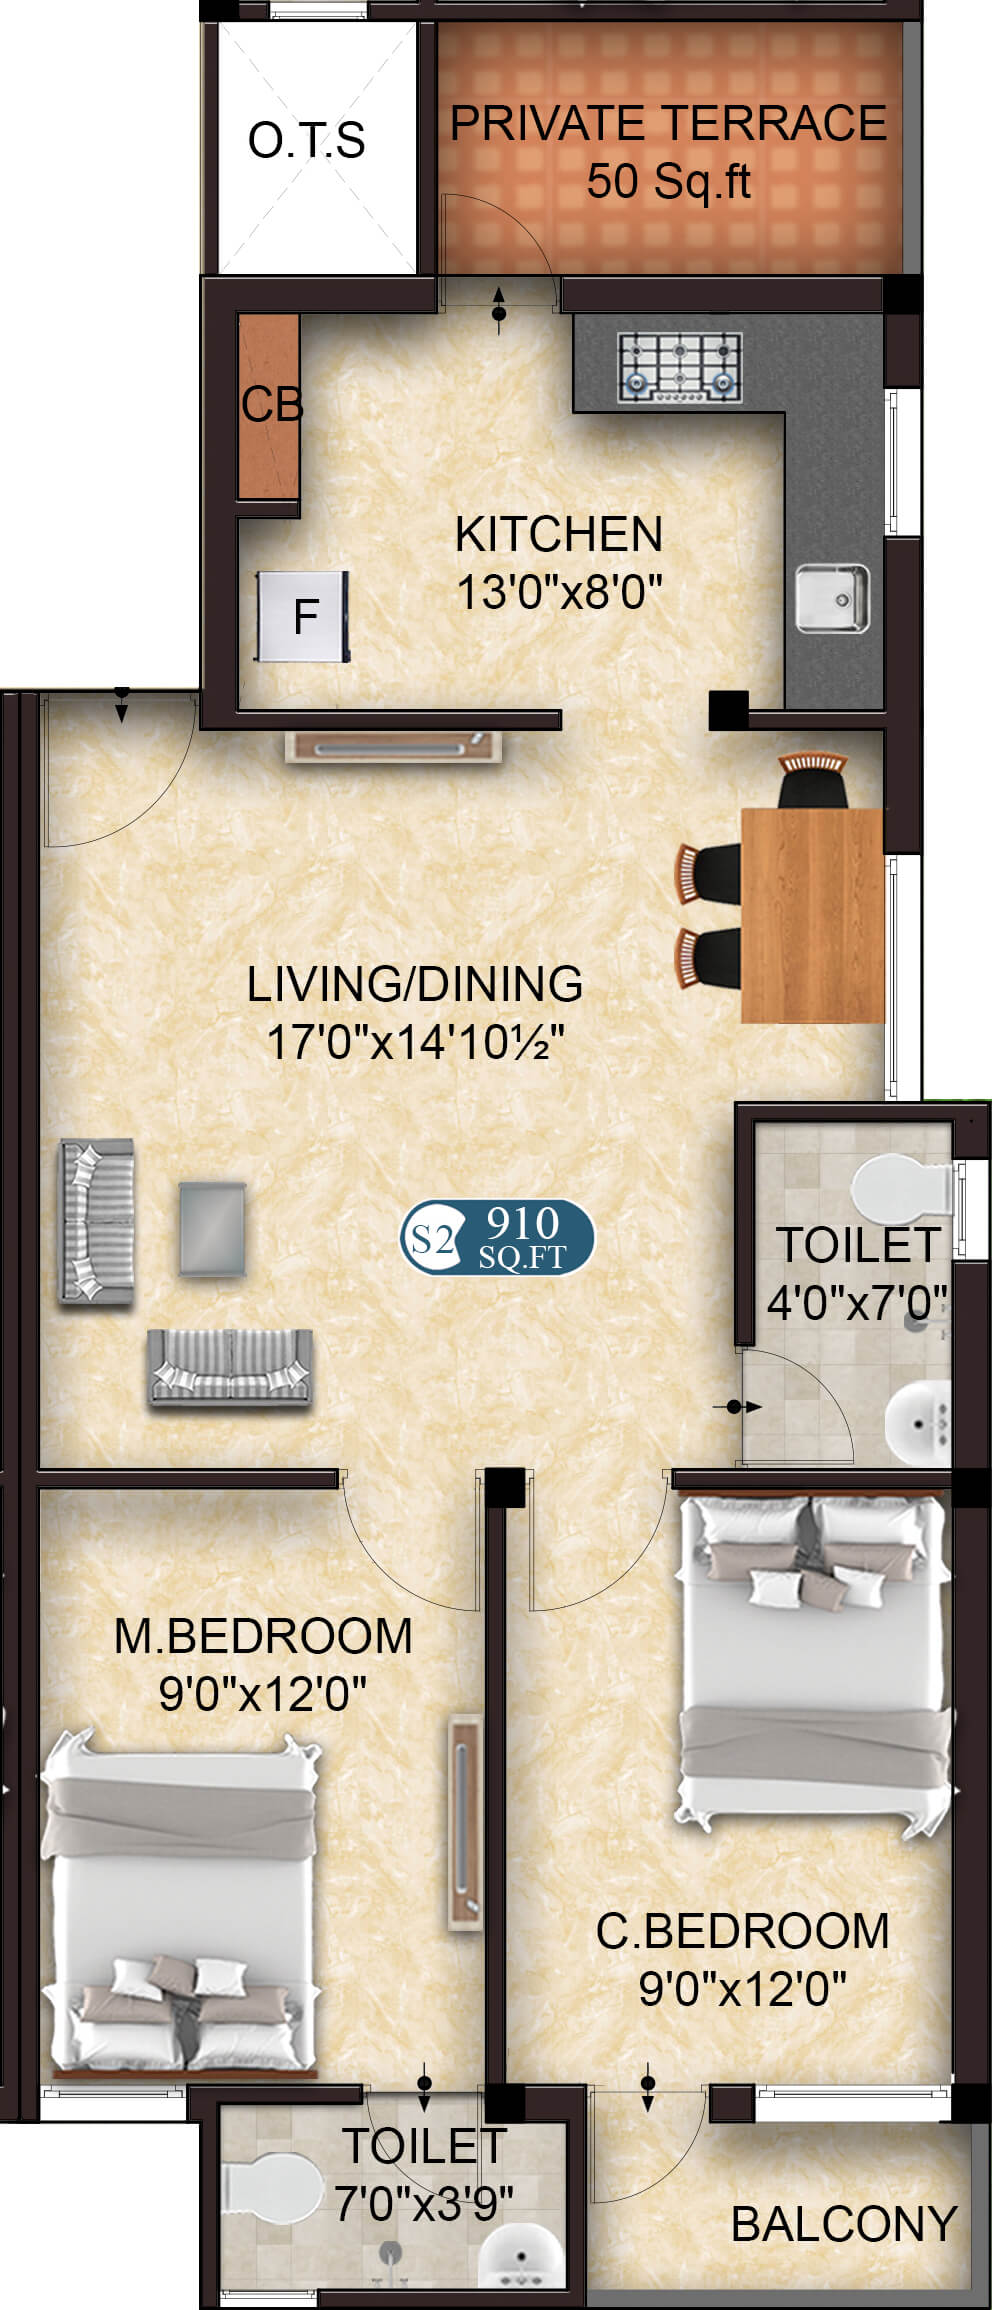 Aspire S2 2BHK 910 - Flats in OMR